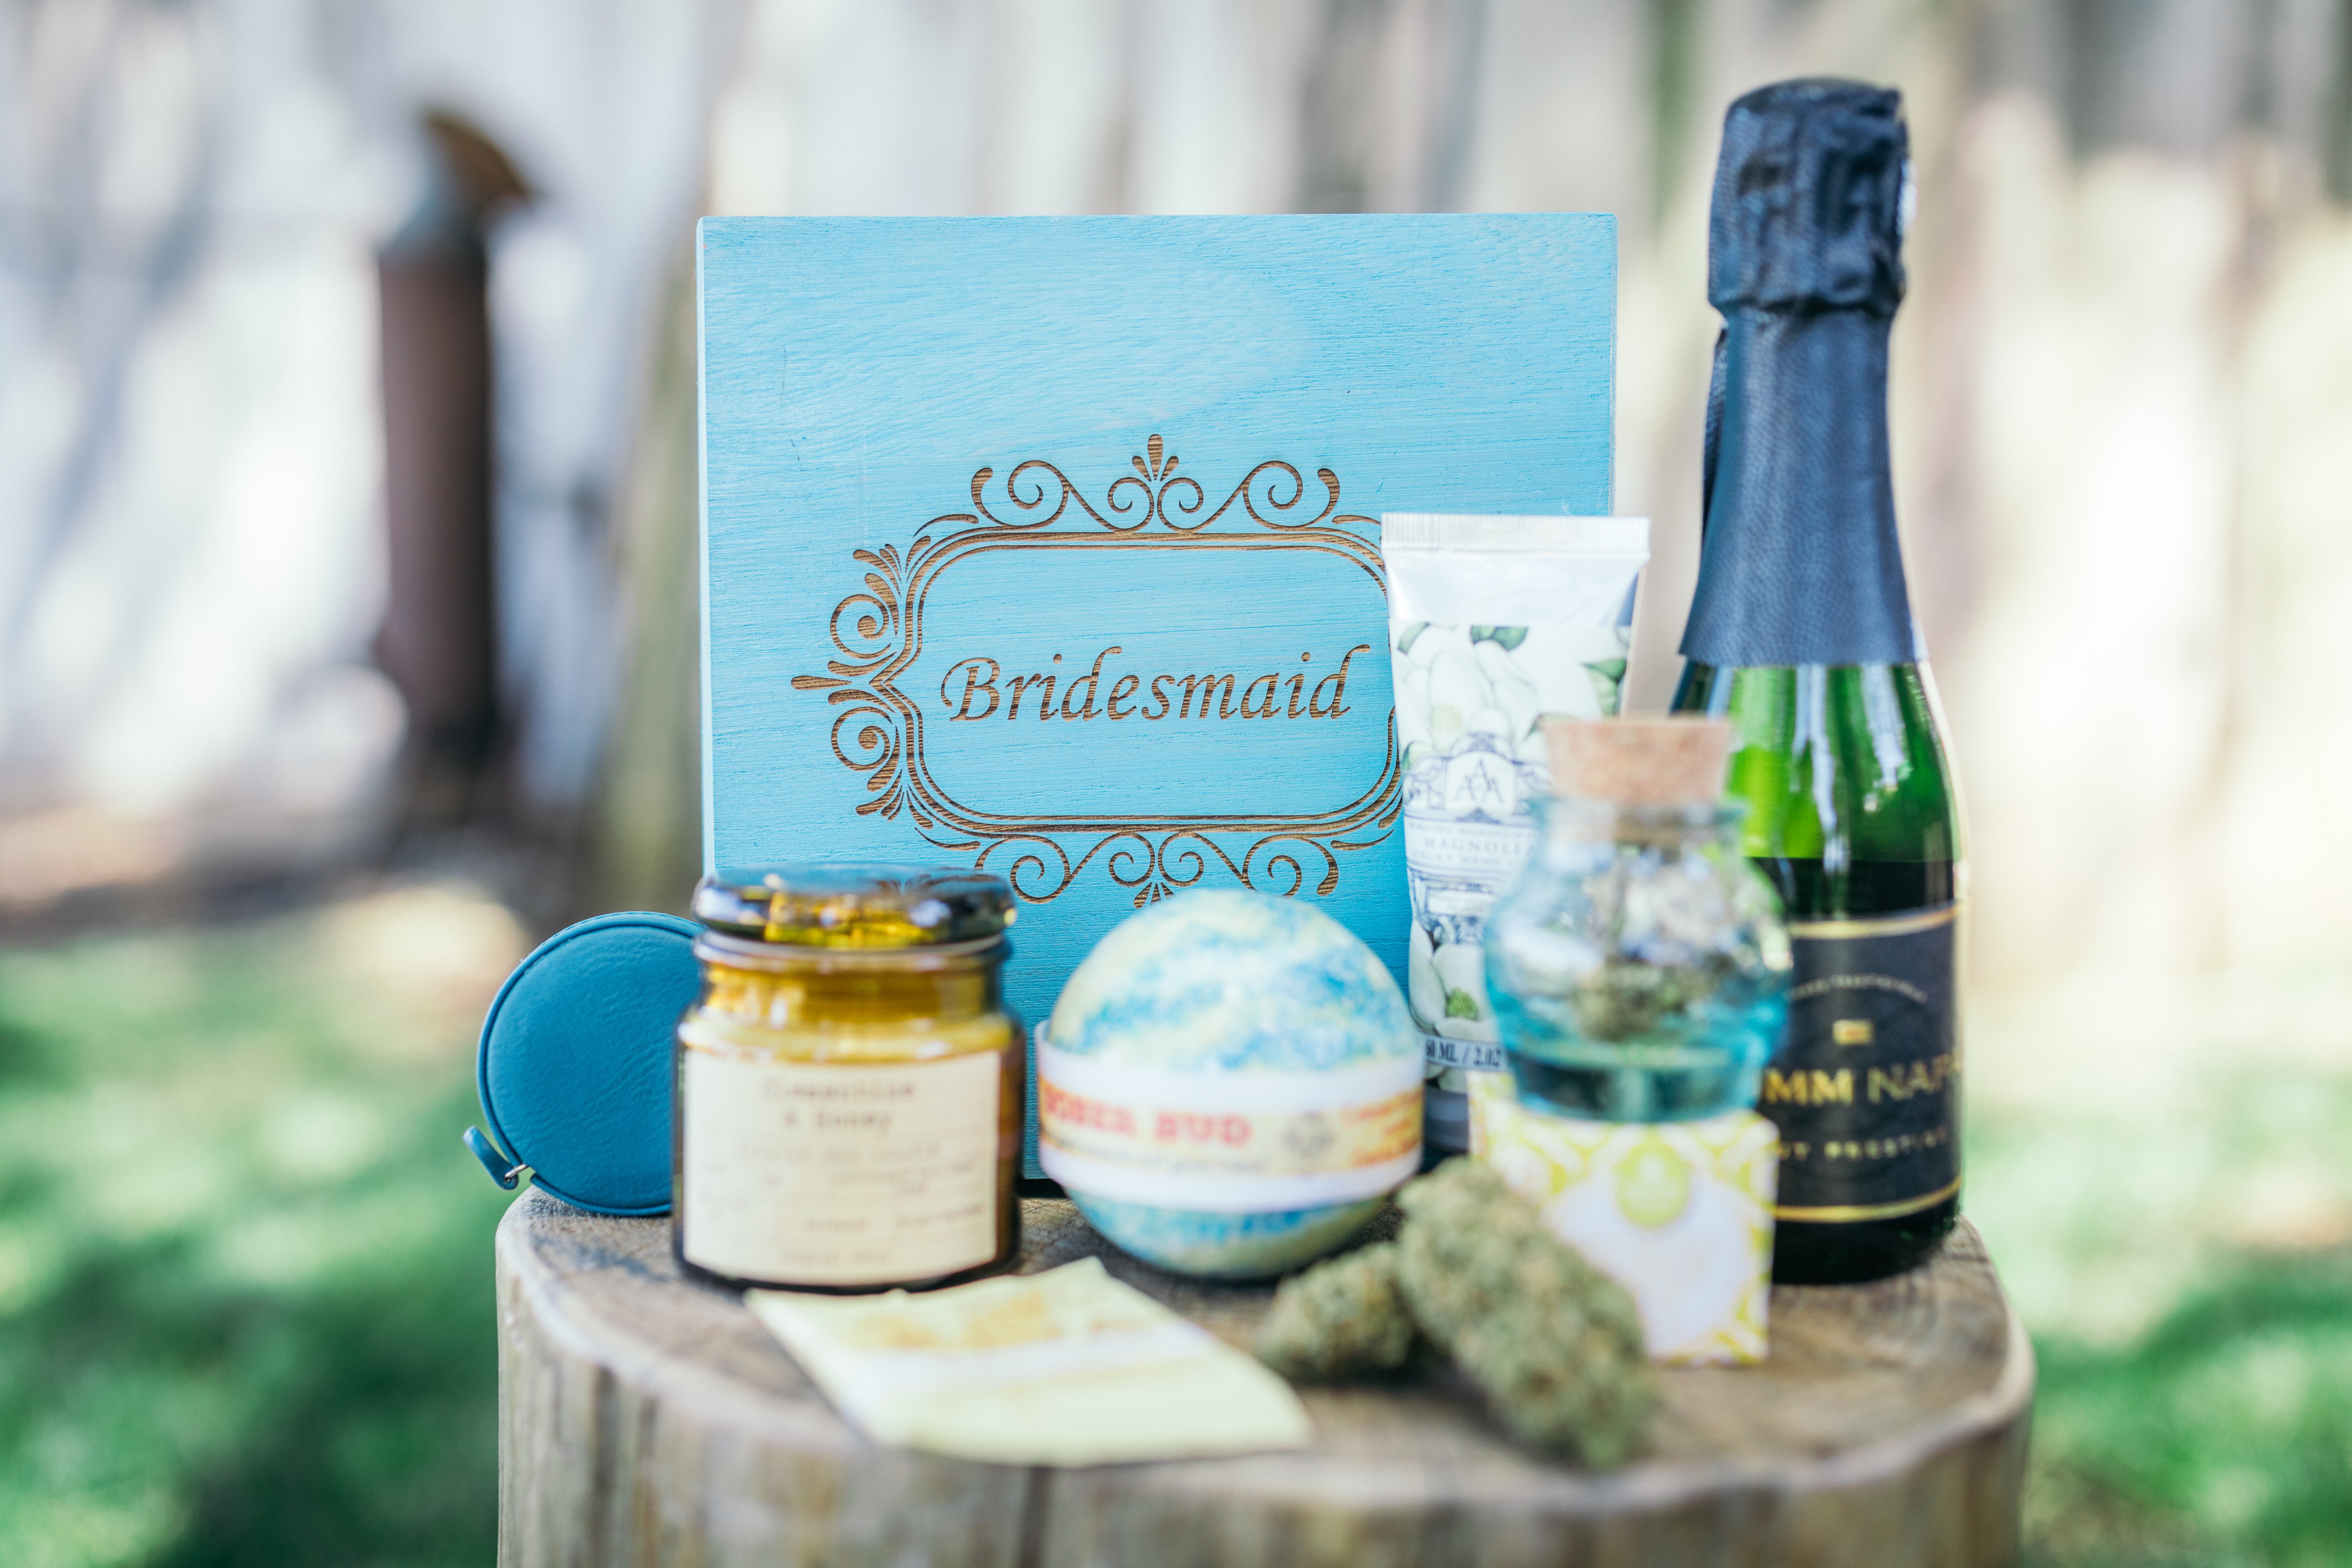 Bridesmaid gifts.